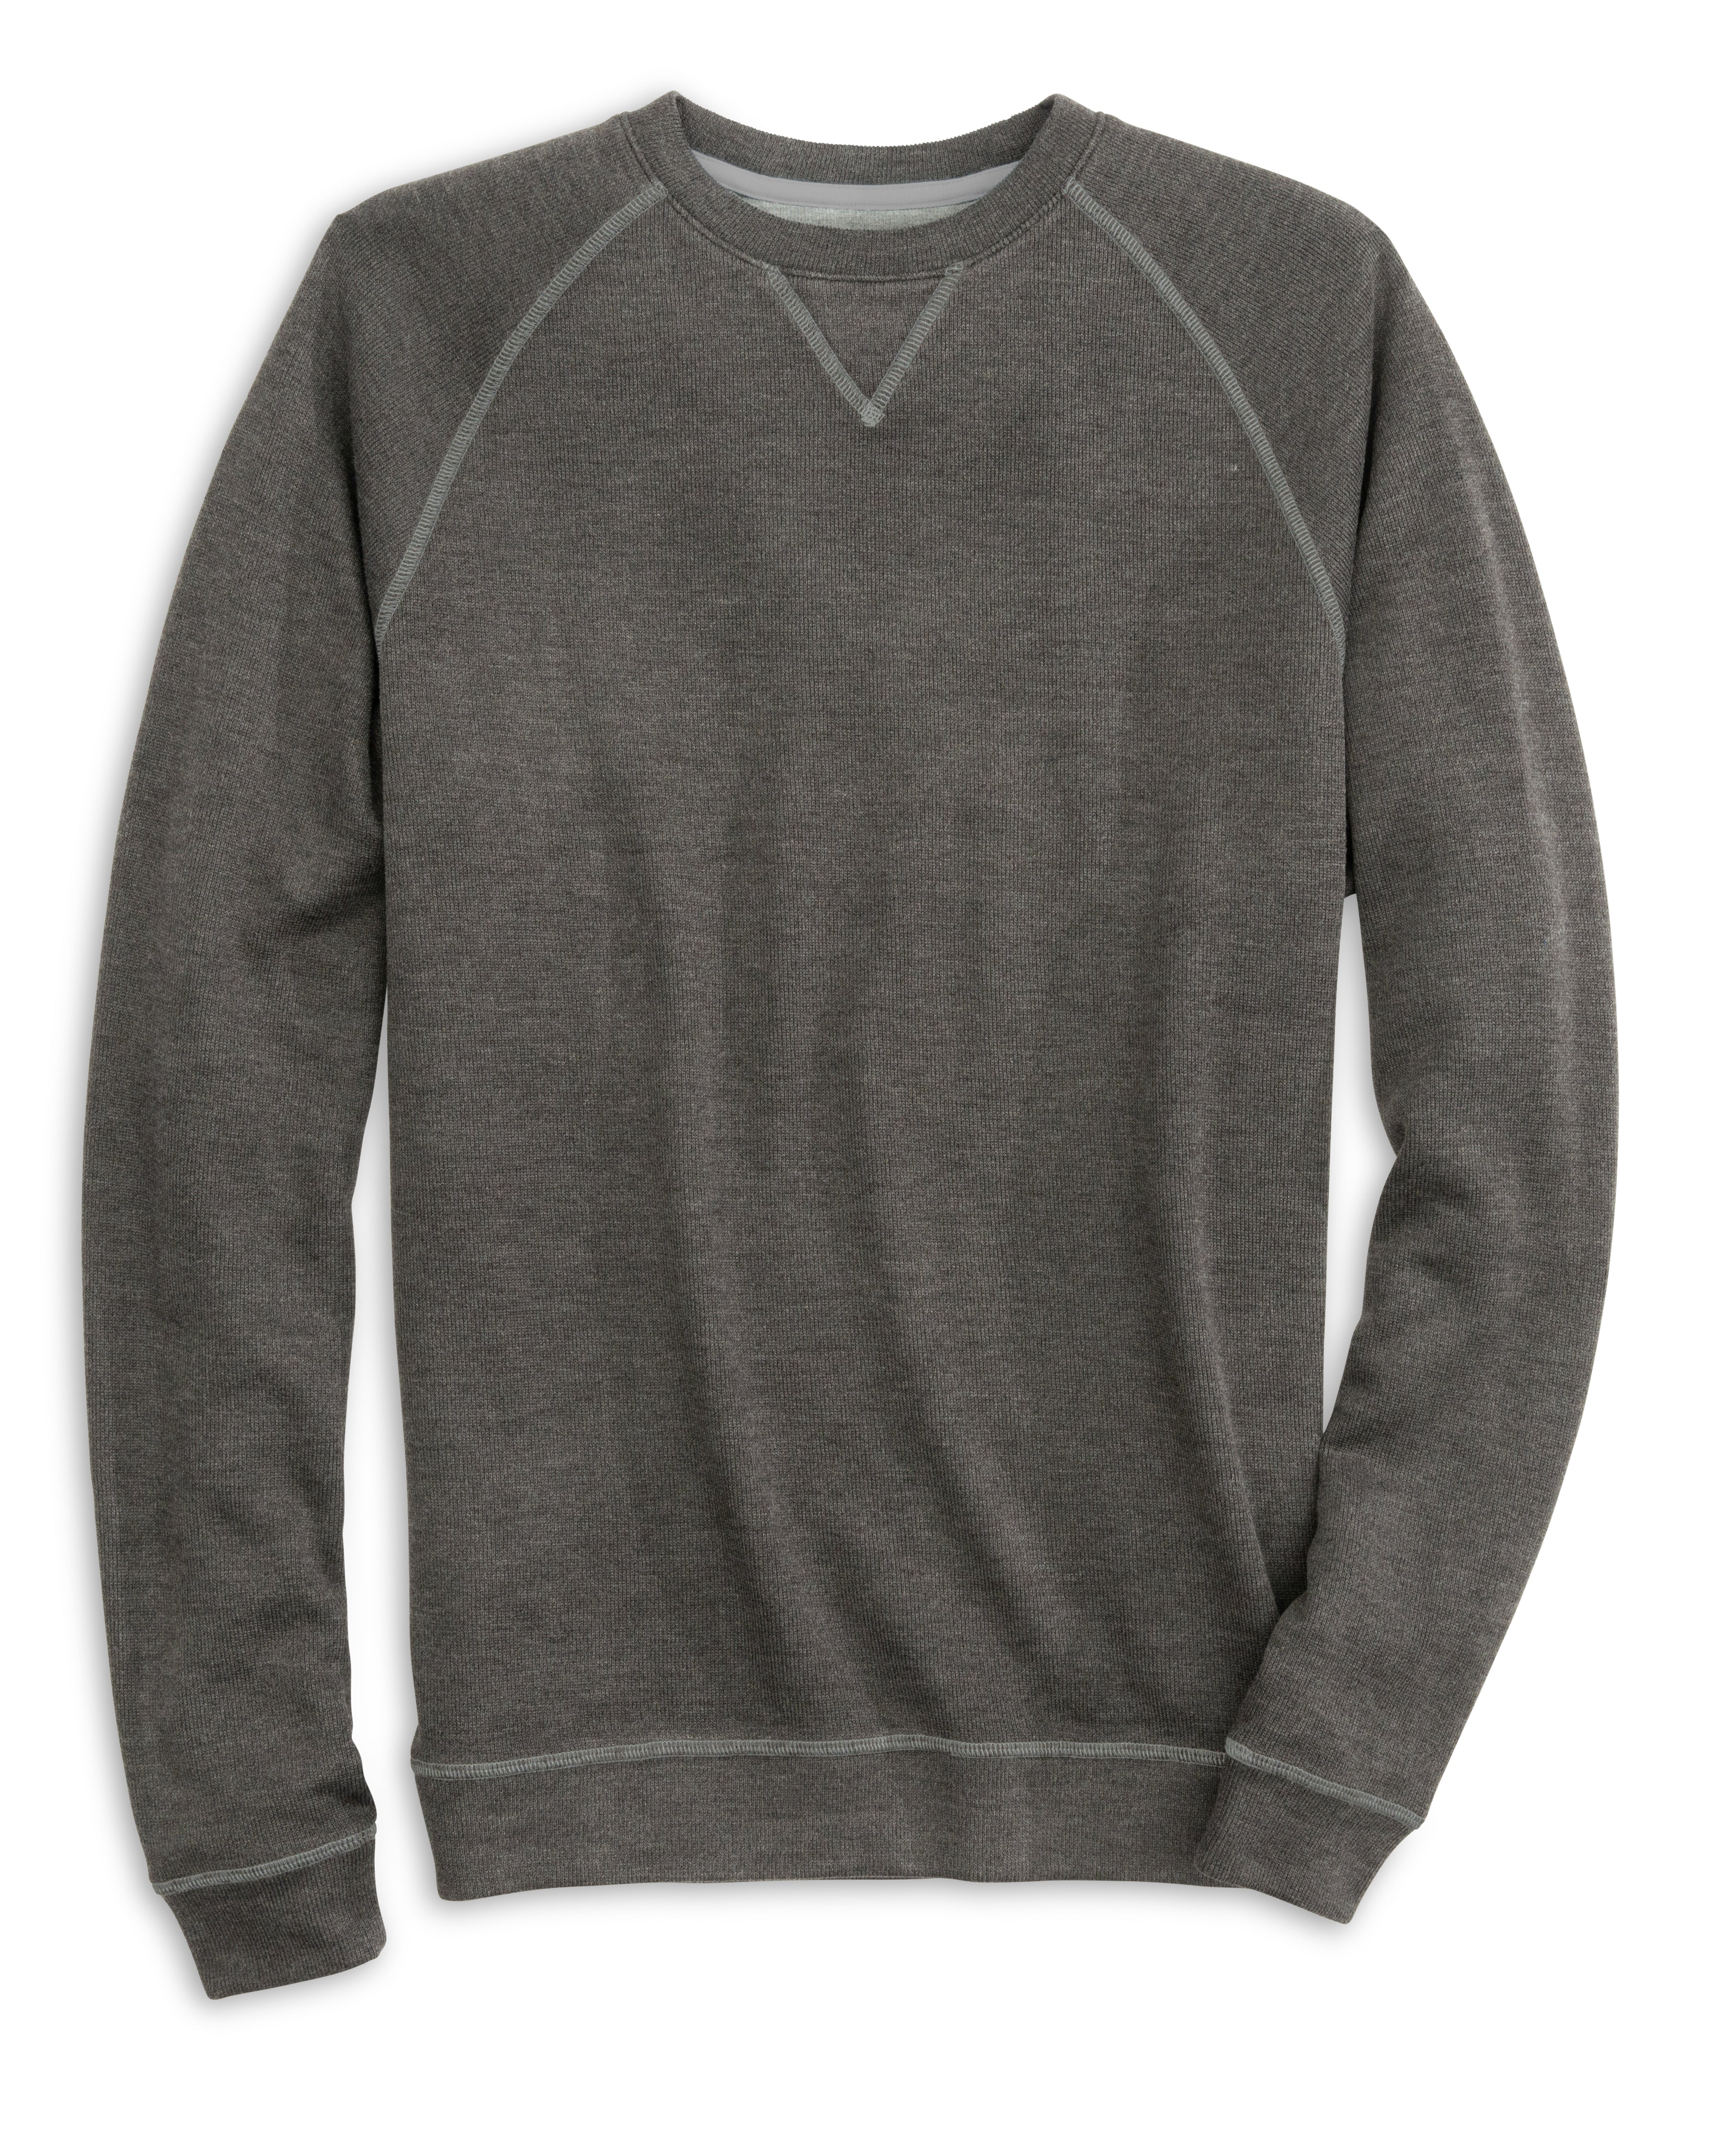 Shields Sweatshirt in Charcoal